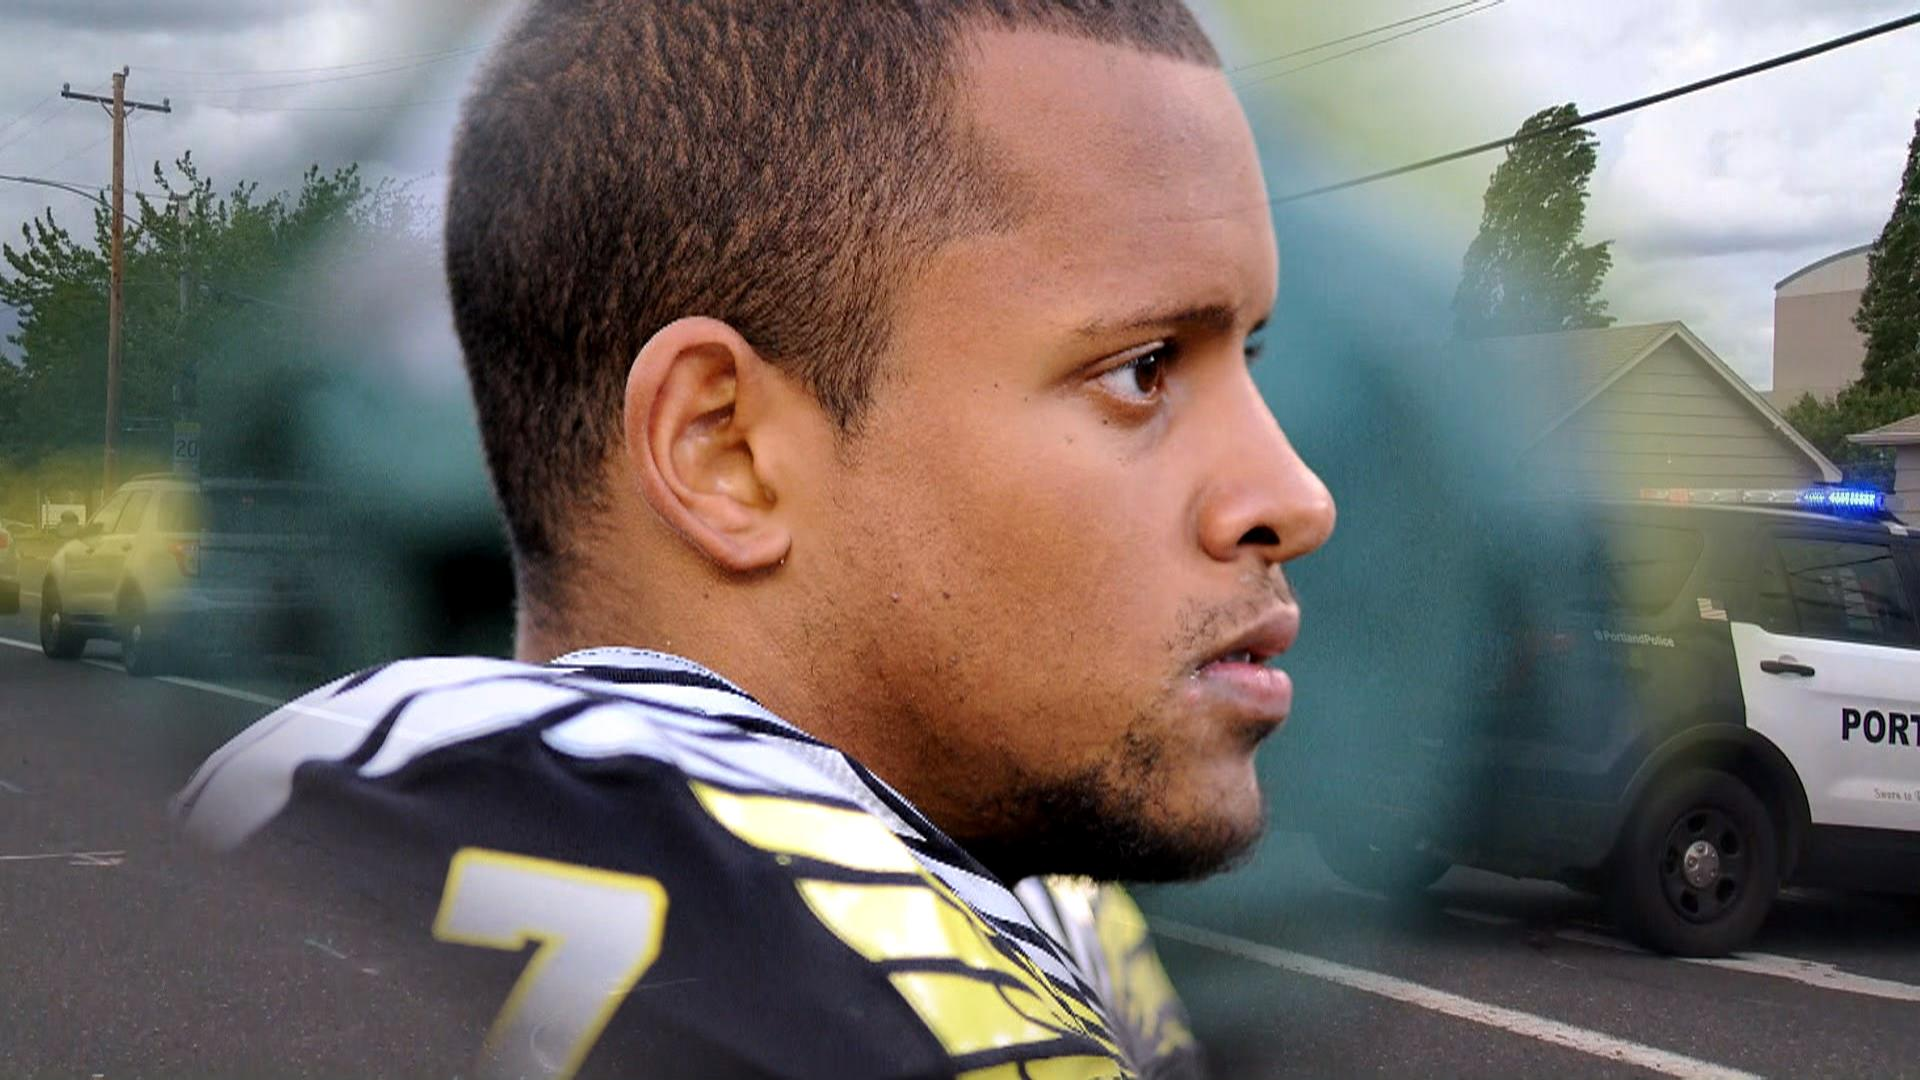 Oregon school coach, former football star Keanon Lowe, tackles armed student, witnesses say